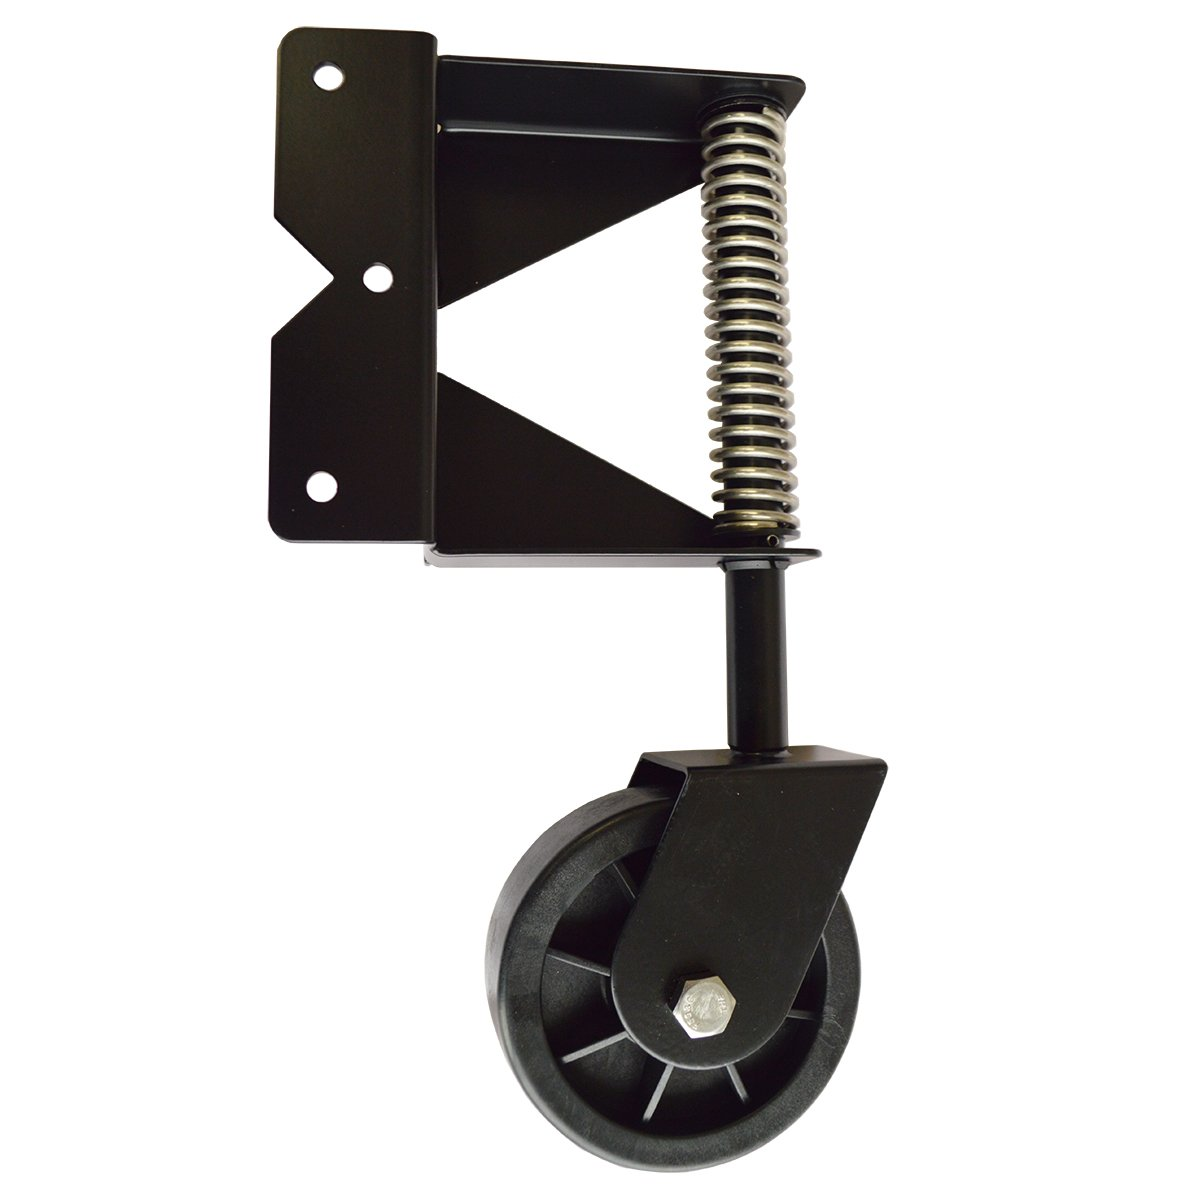 Black Stainless Steel Gate Wheel for Large and Heavy Gates   GW1-SS-BK